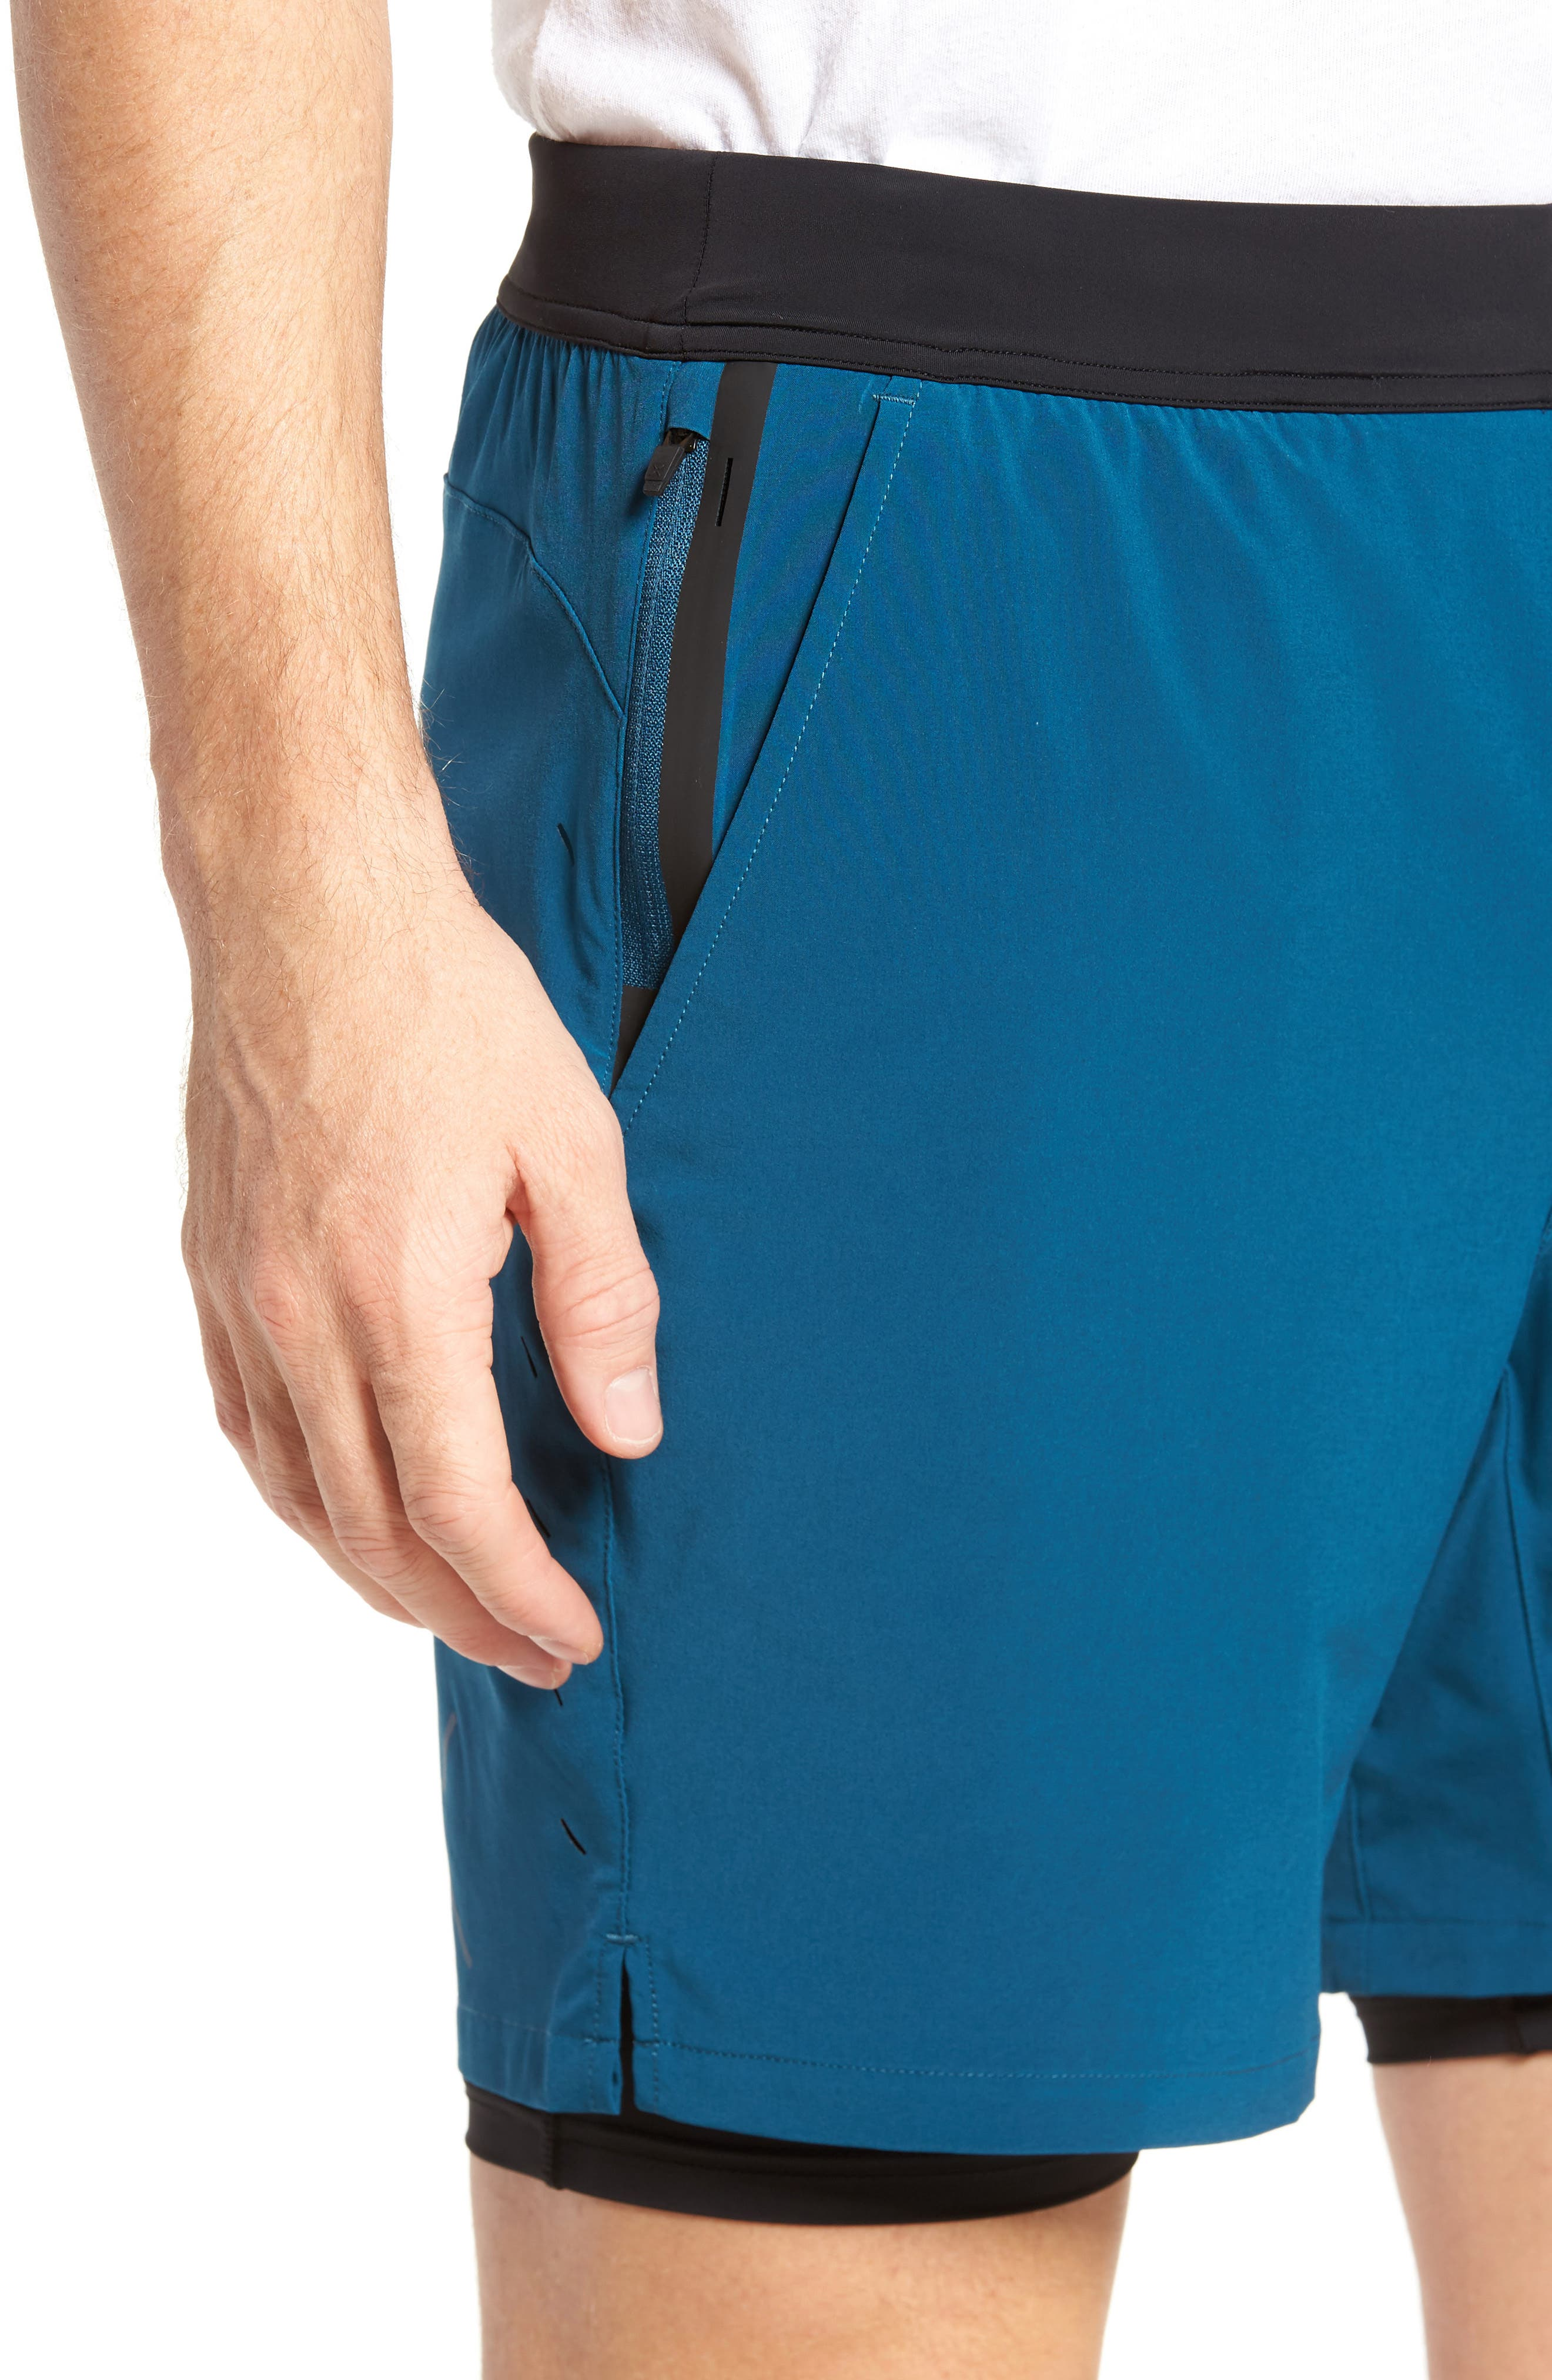 Interval Athletic Shorts,                             Alternate thumbnail 4, color,                             Dark Teal